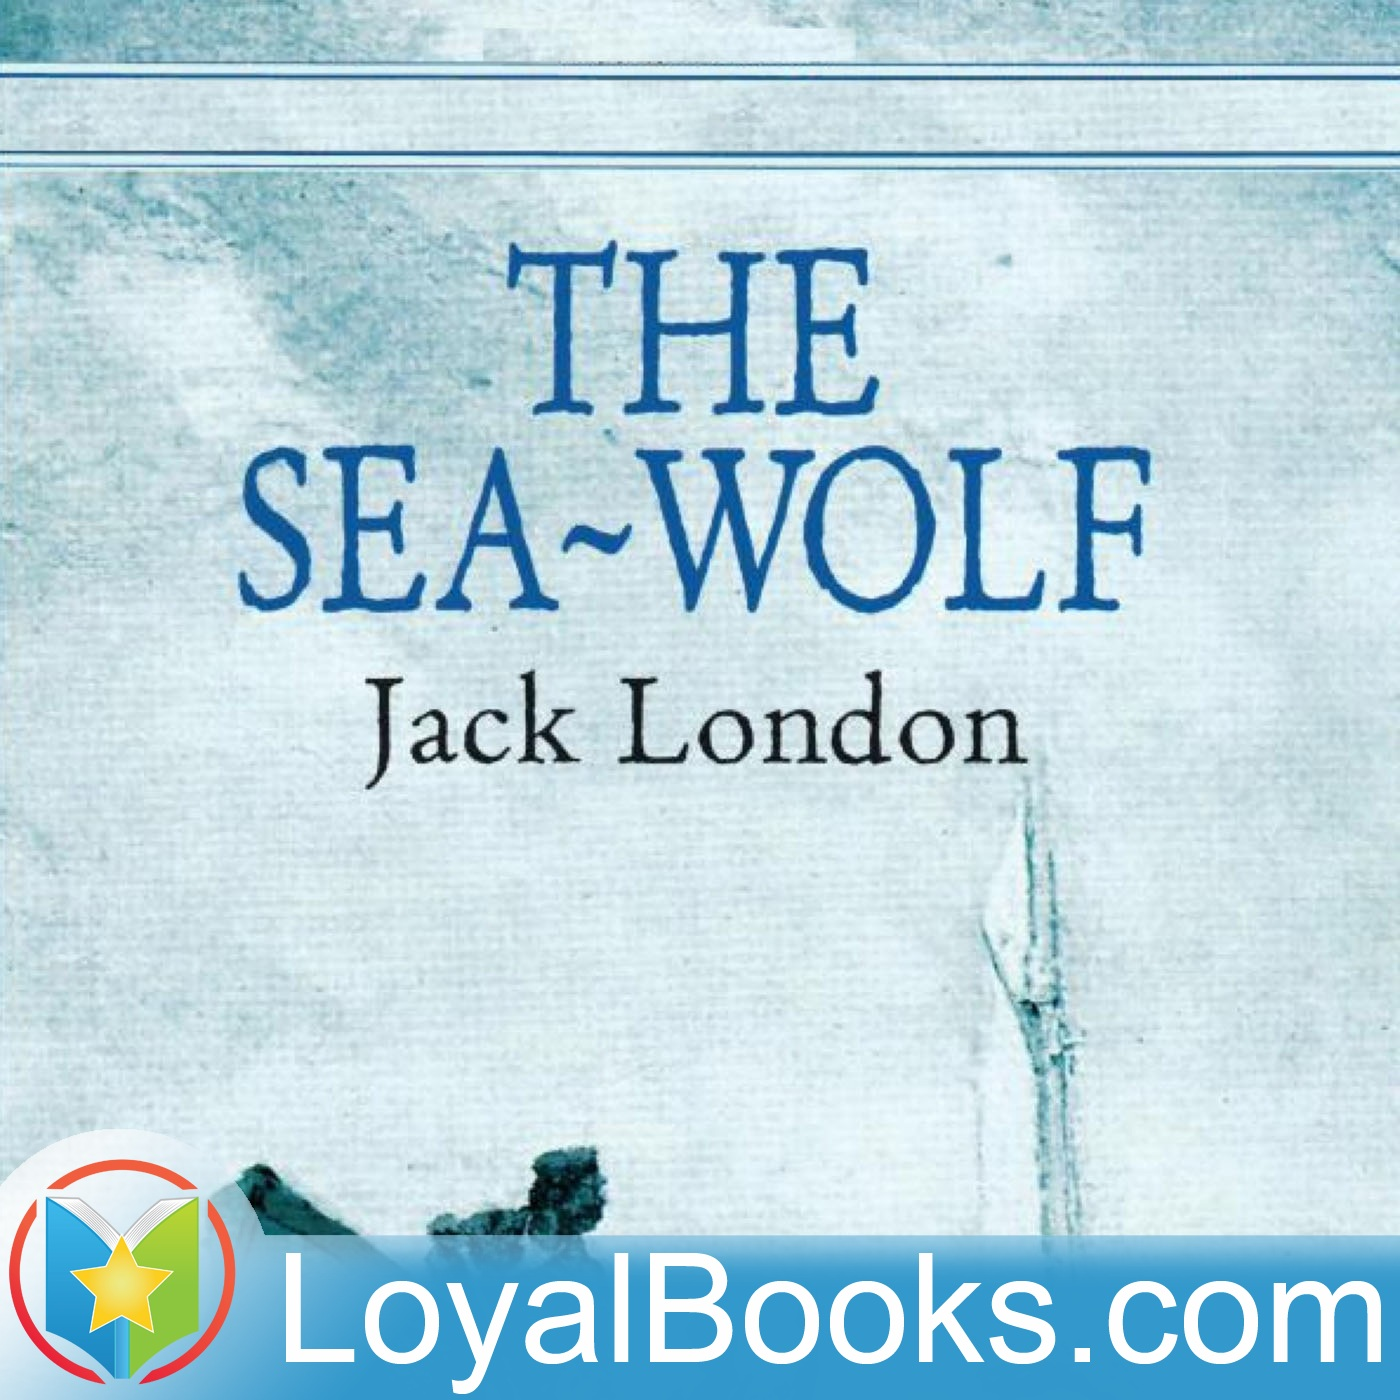 <![CDATA[The Sea Wolf by Jack London]]>